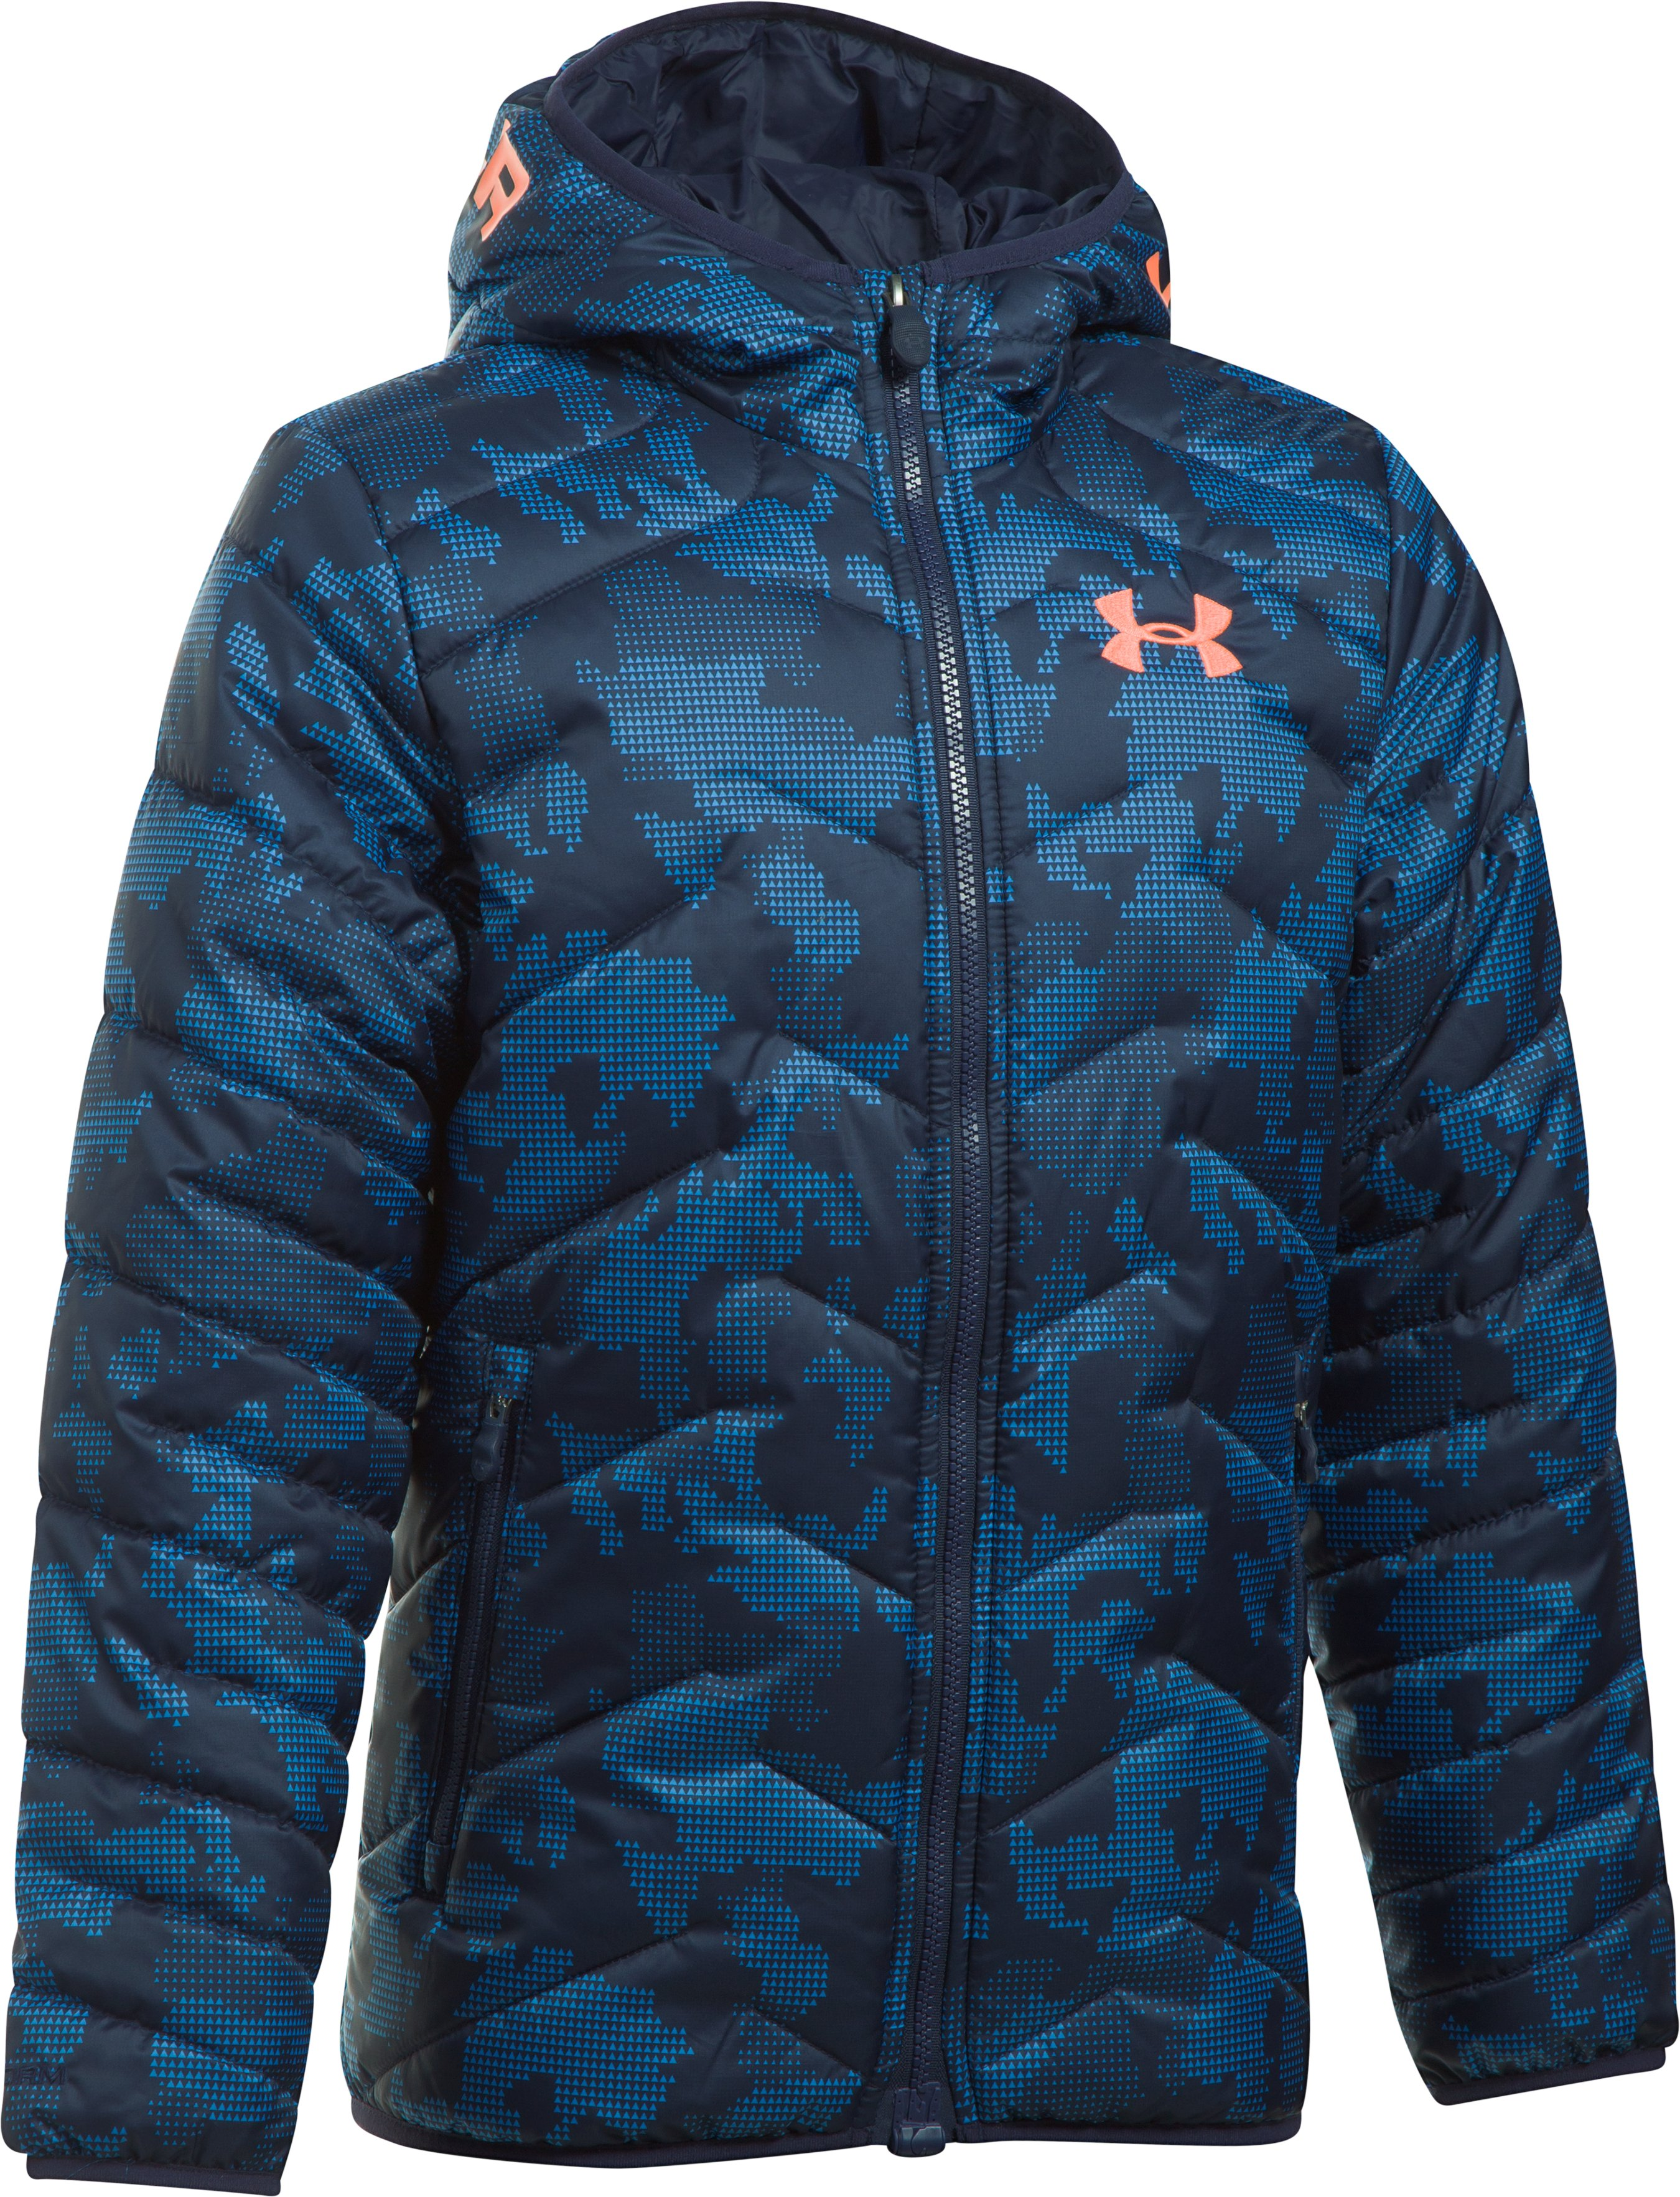 Boys' ColdGear® Reactor Hooded Jacket, Midnight Navy,